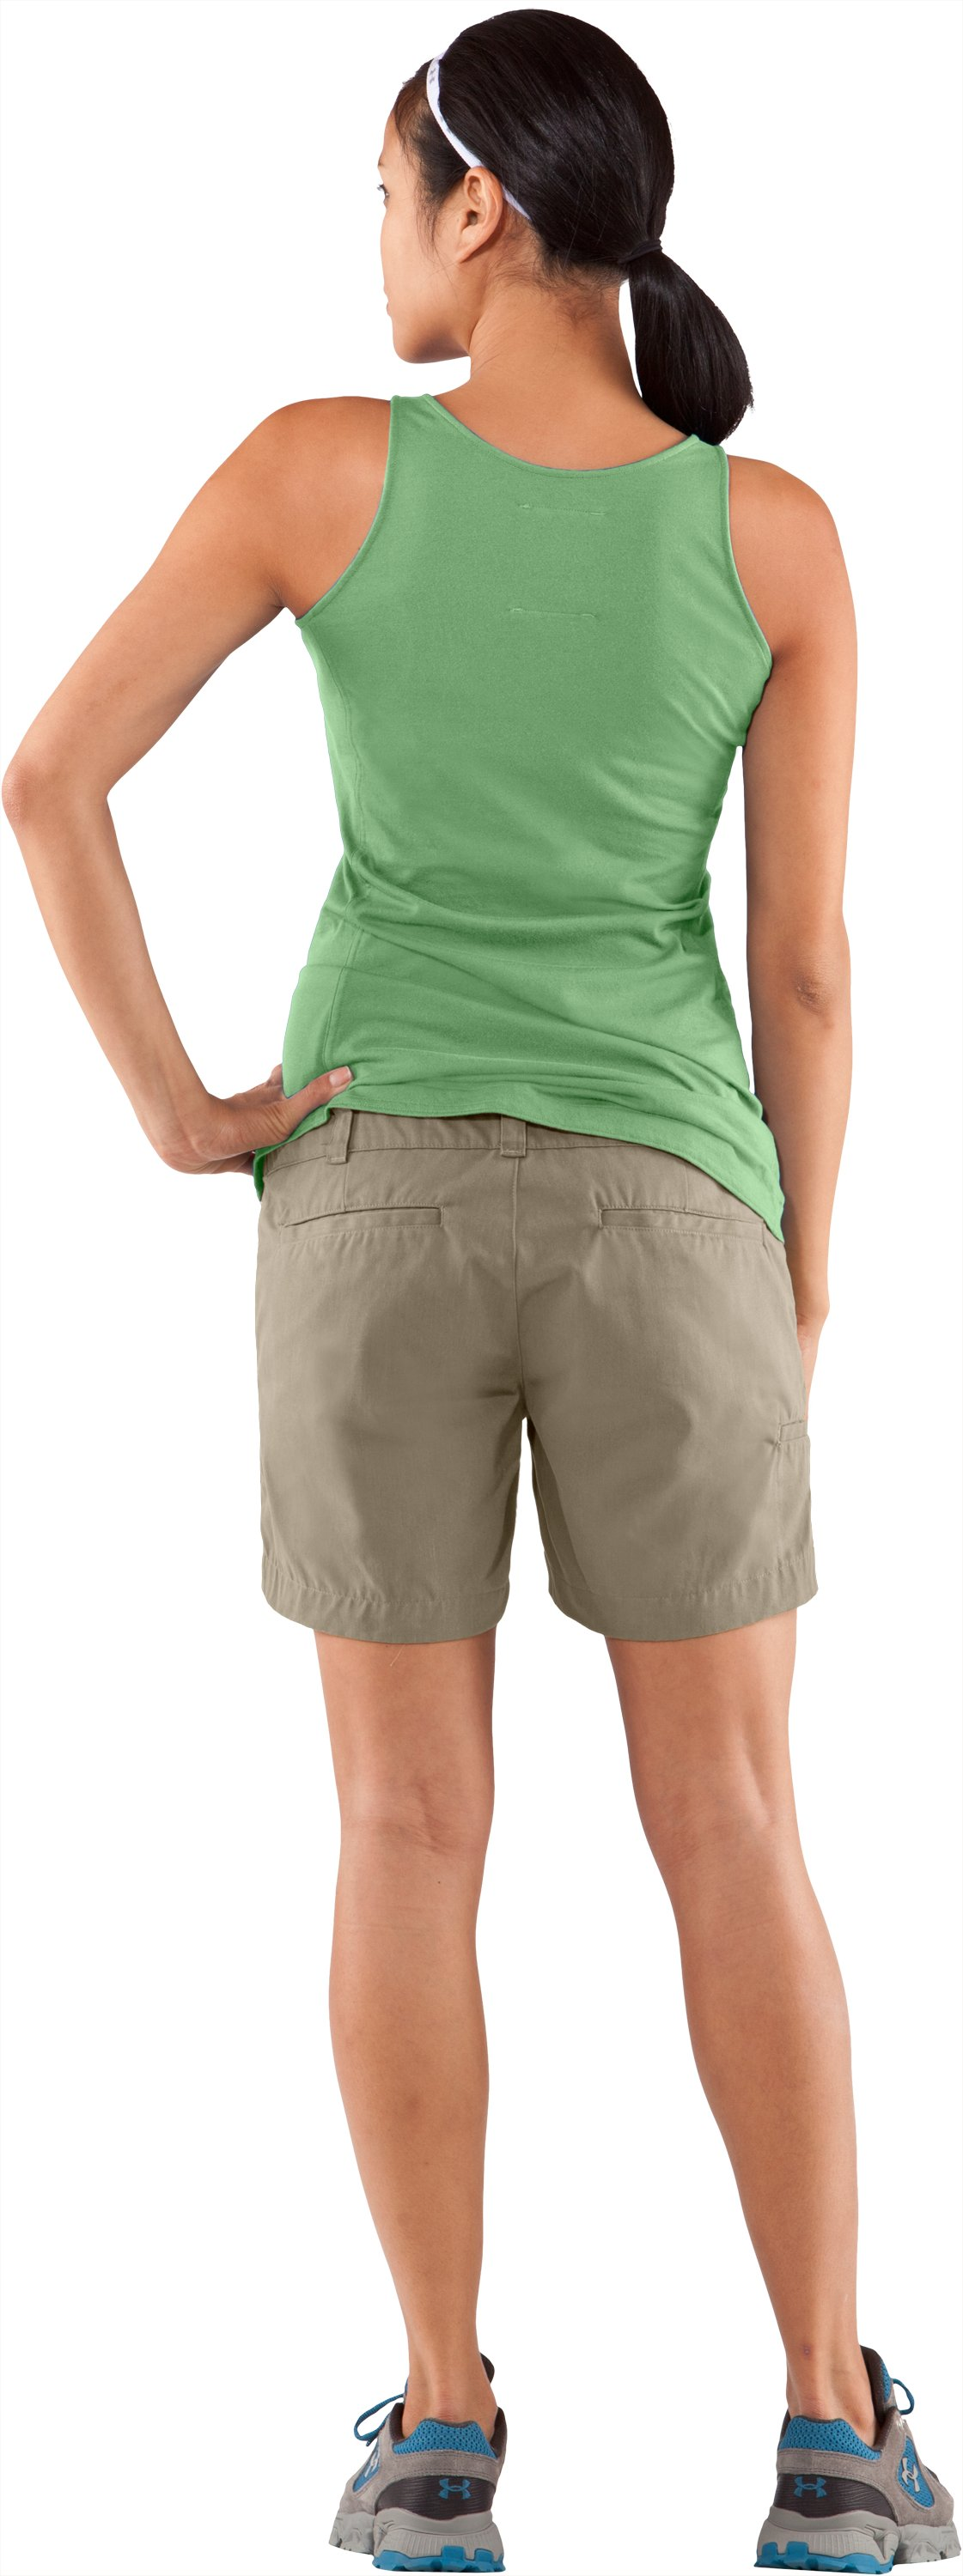 "Women's Calvert 5"" Hiking Short, Dune, Back"